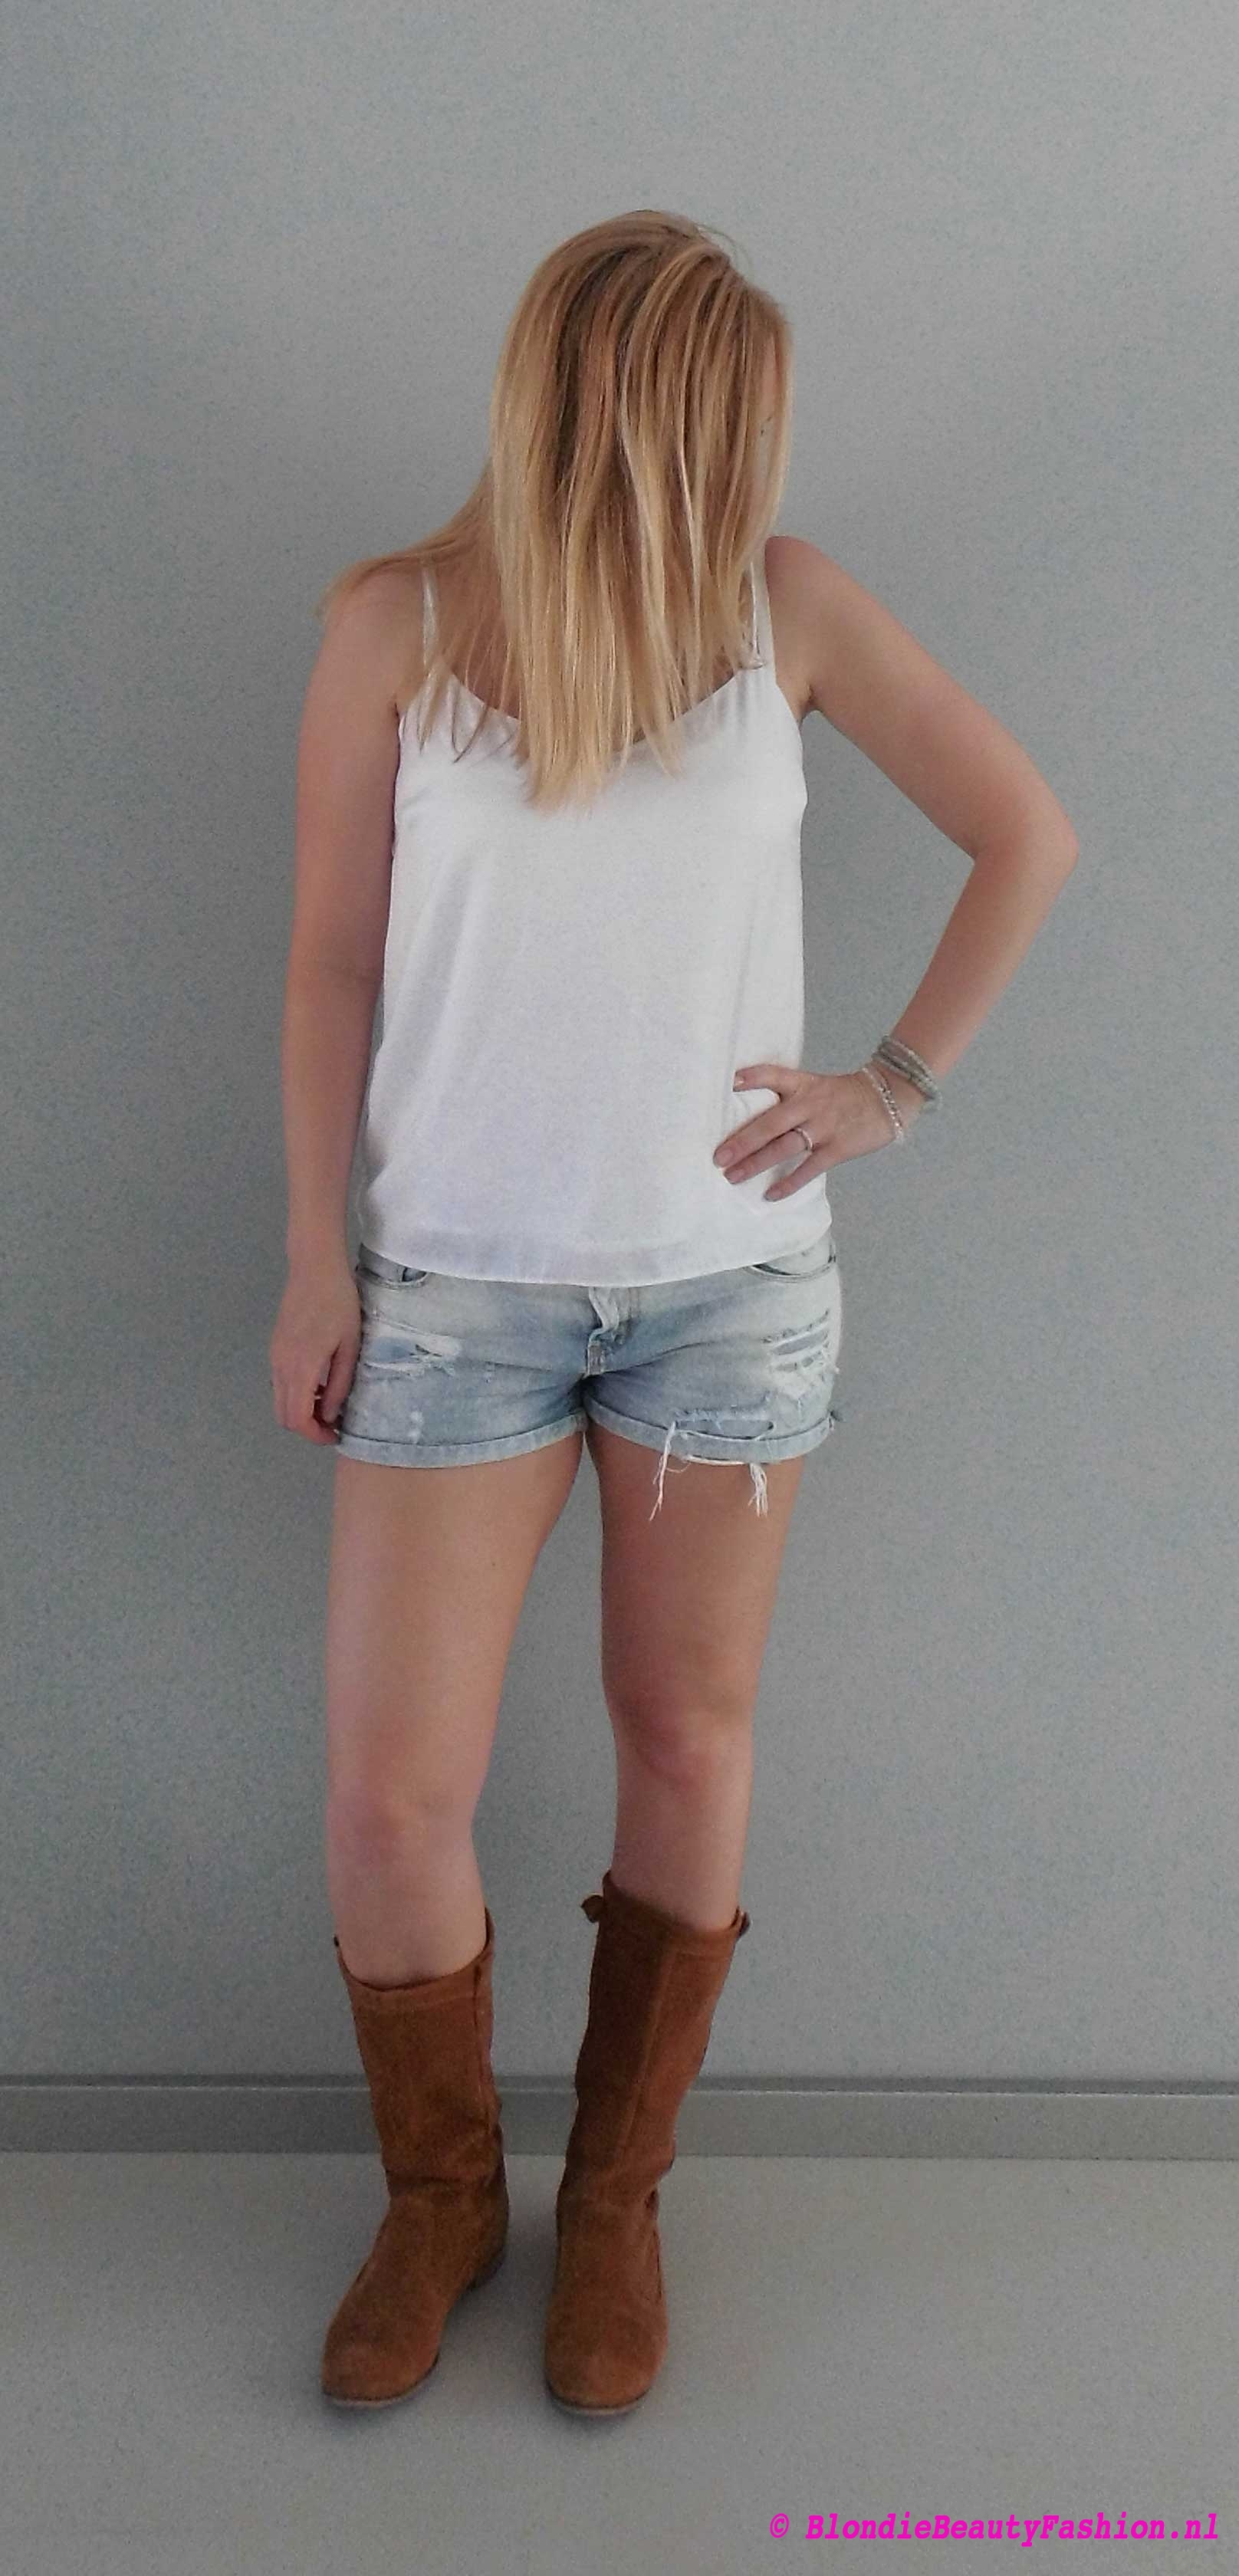 OOTD-outfit-style-festival-casual-jeans-shorts-wit-boots-stradivarius-zara-4